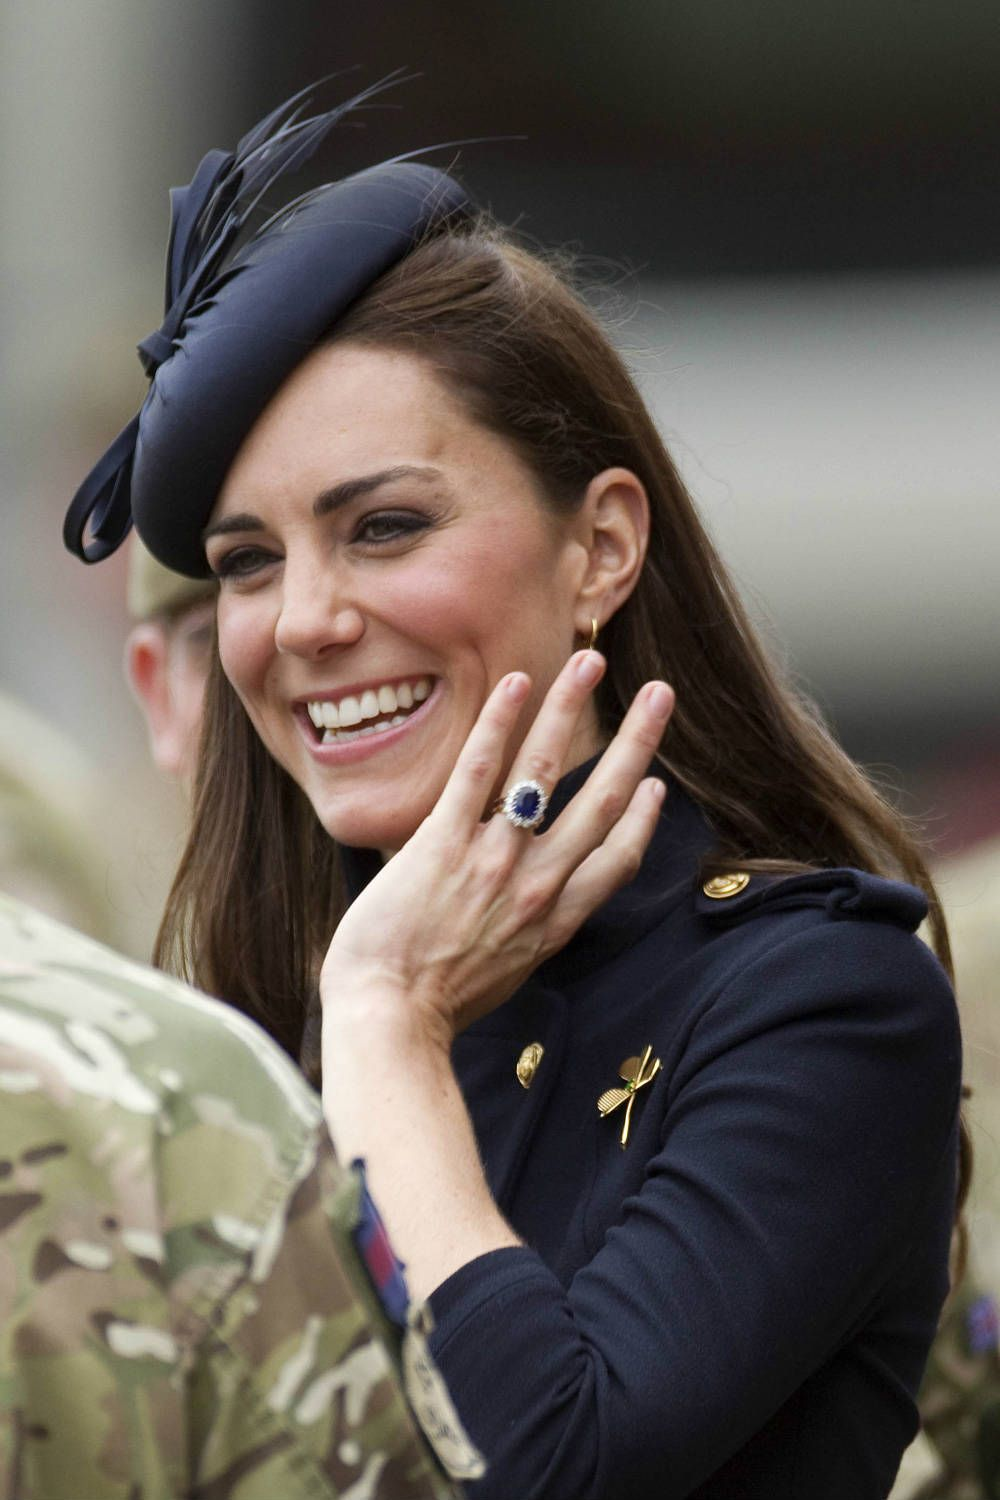 Princess Kate wearing the e sapphire engagement ring that Lady